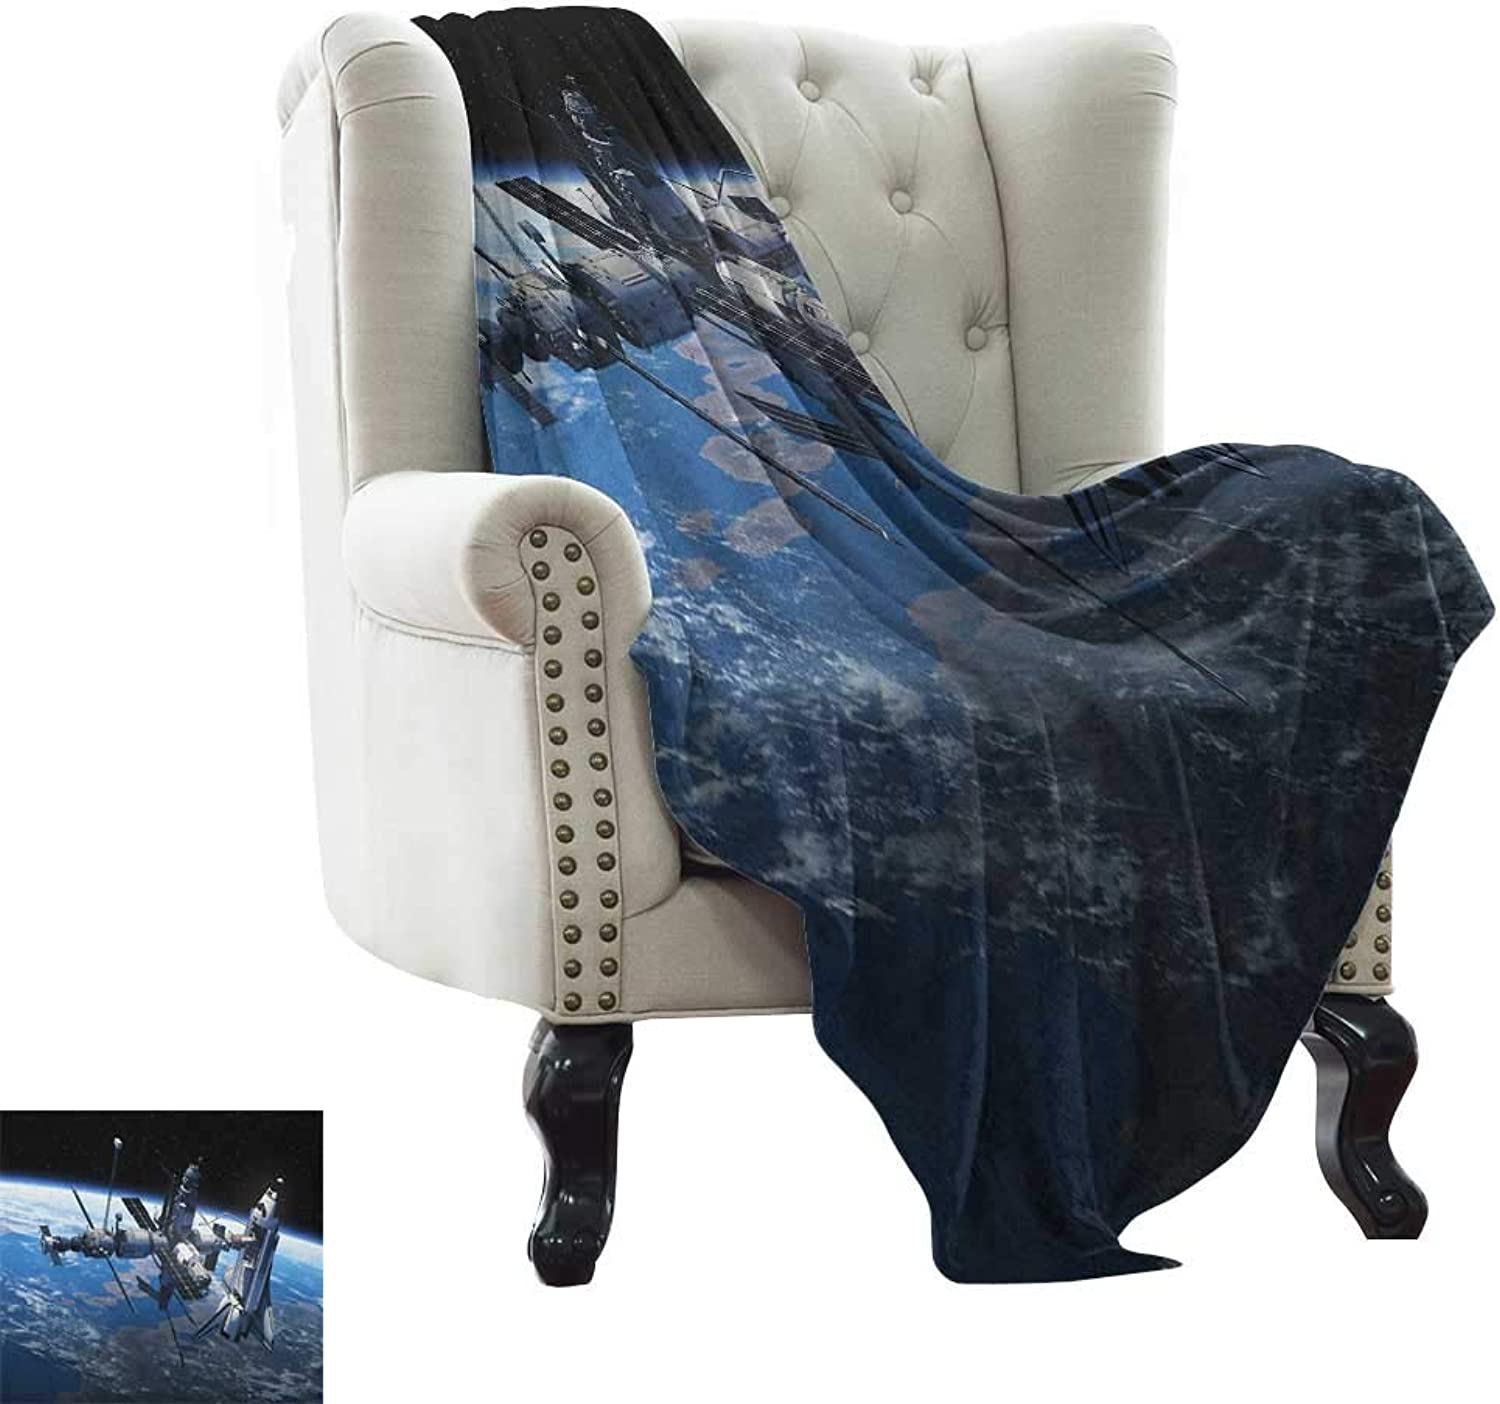 Weighted Blanket for Kids Outer Space,Space Shuttle and Station View Cosmonaut Adventure on Myst Globe Orbit Off, bluee Grey Black 300GSM,Super Soft and Warm,Durable Throw Blanket 60 x62